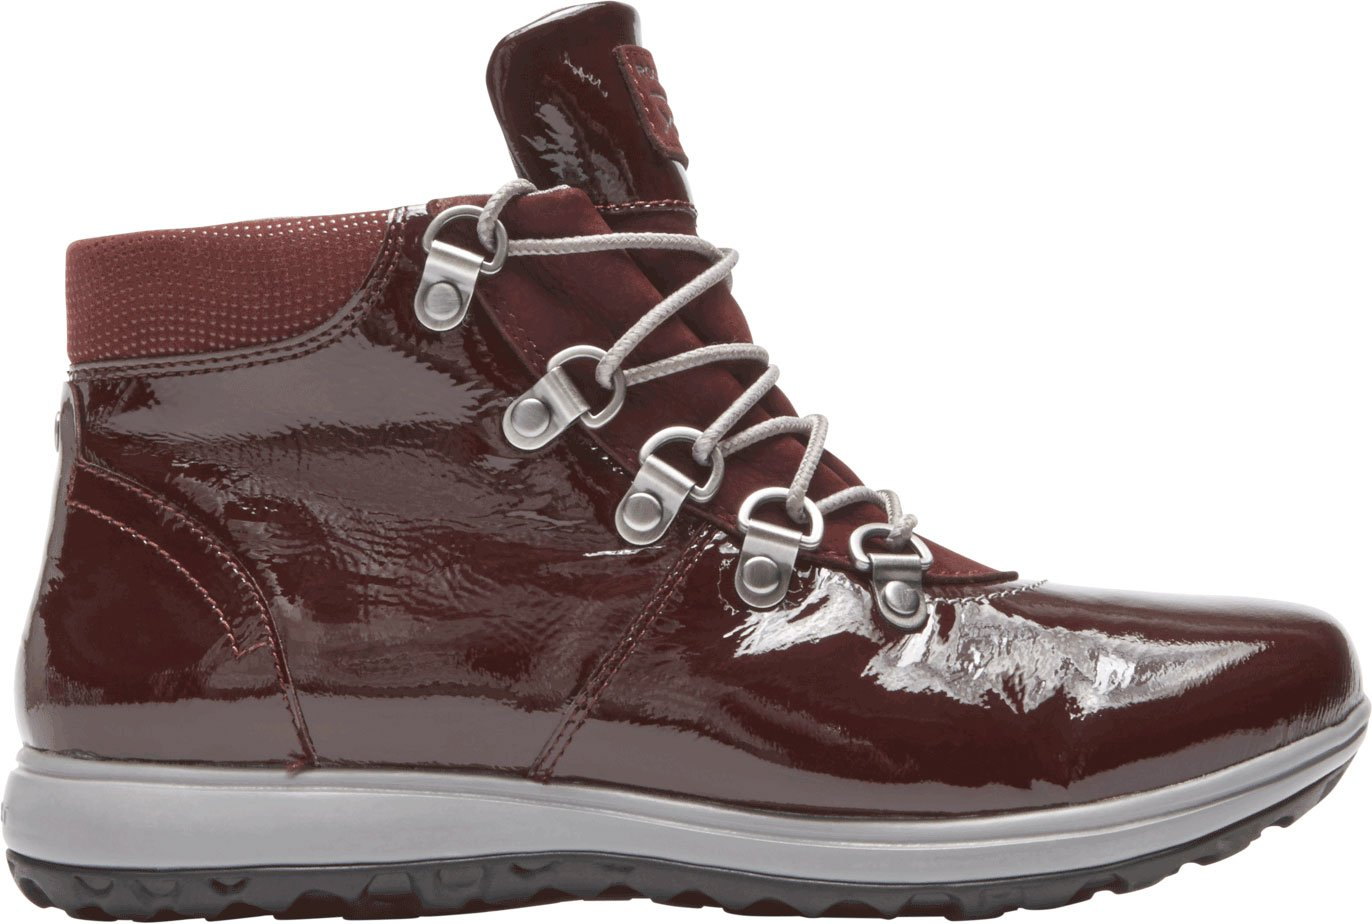 Rockport Snow Women's XCS Britt Alpine Snow Rockport Boot B01N6YEYWF 10 W US|Merlot 20926b